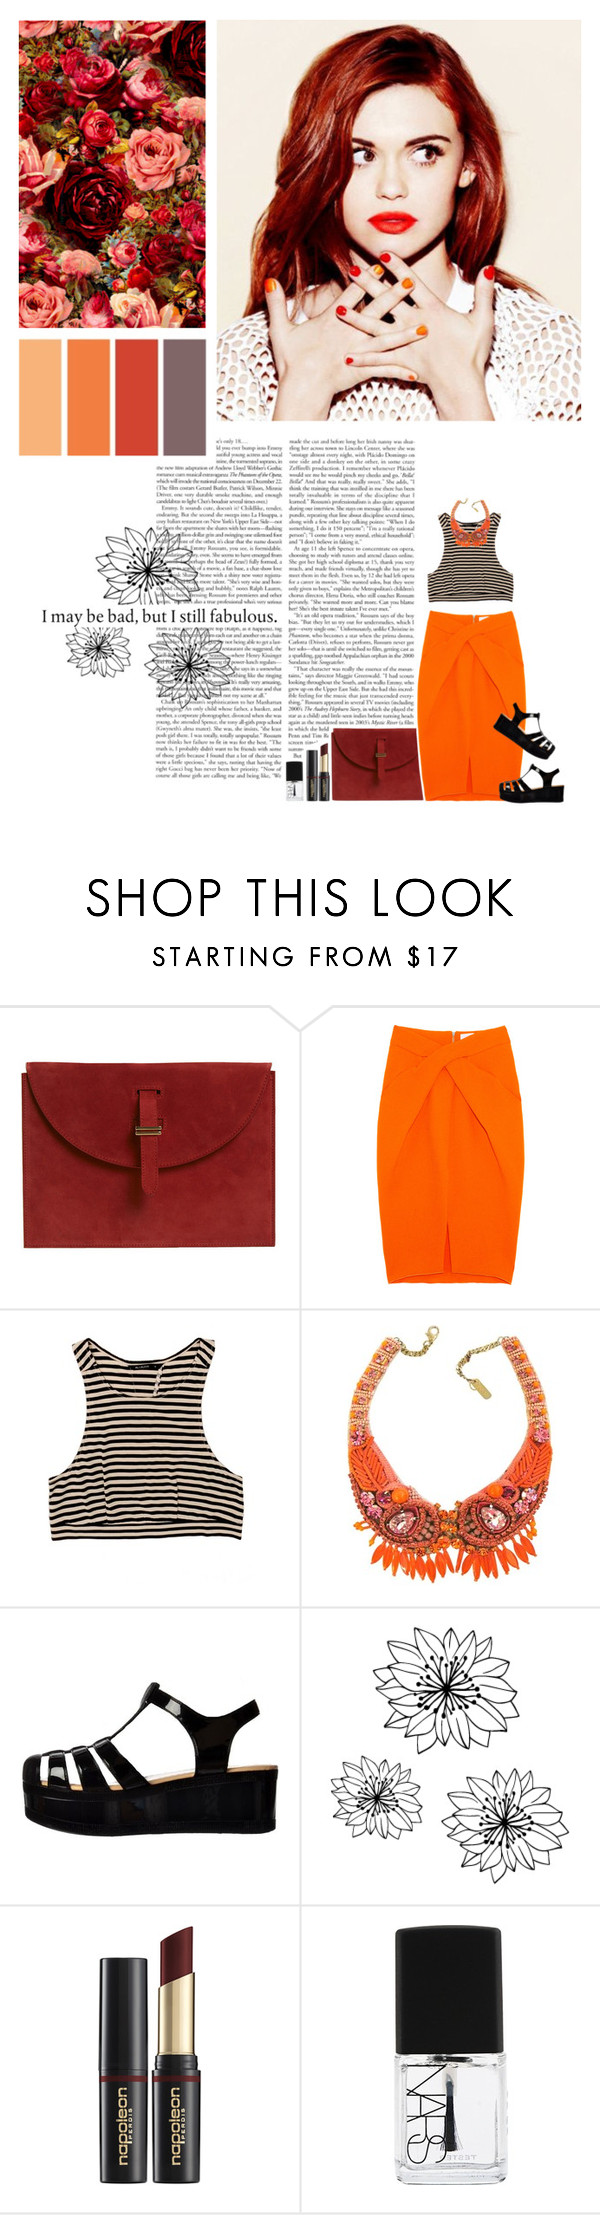 """""""I keep going to the river to pray, cuz I need something that can wash out the pain"""" by summerrsun ❤ liked on Polyvore featuring Dion Lee, Seed Design, Radà, Retrò, Napoleon Perdis and NARS Cosmetics"""